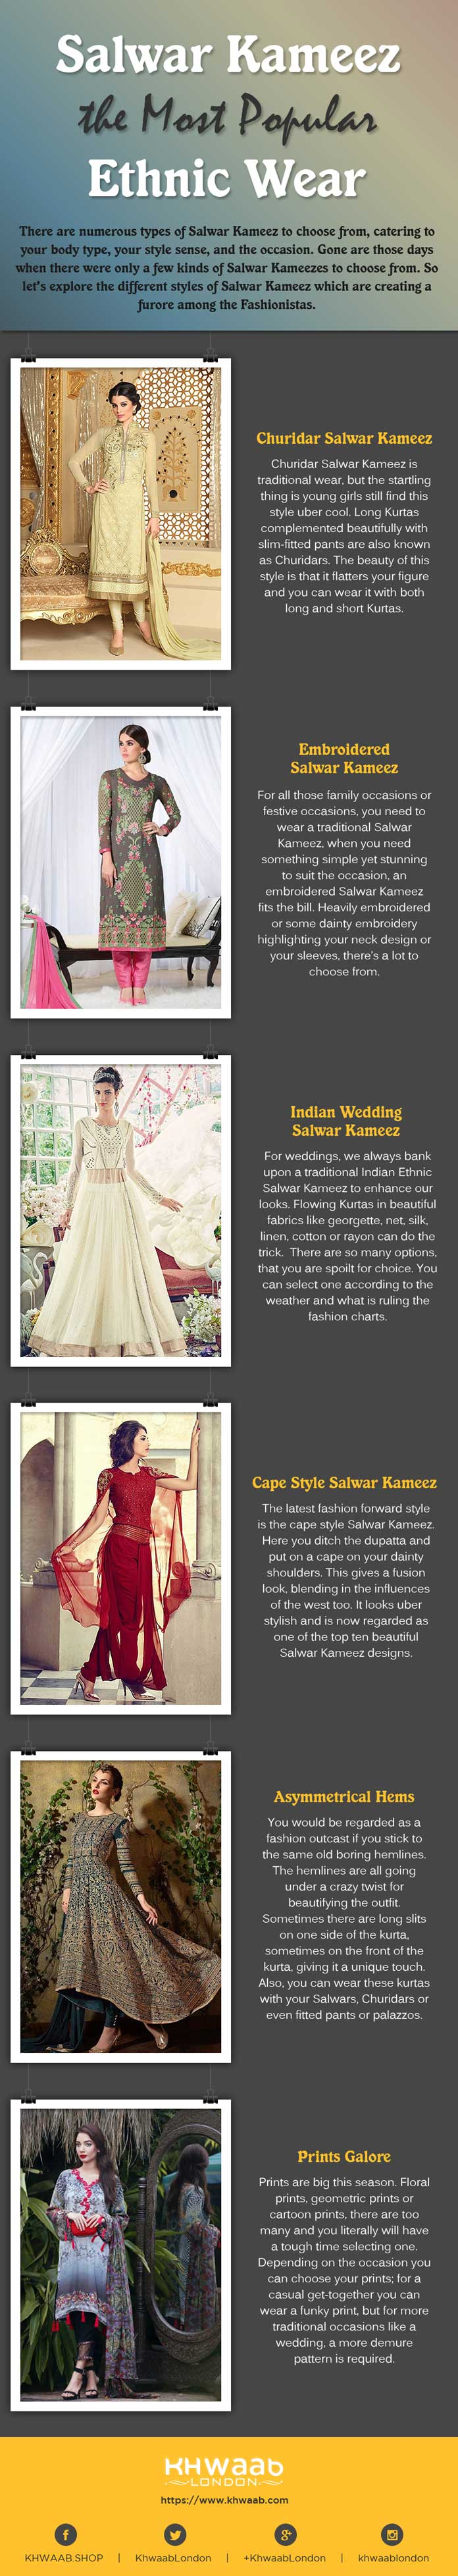 salwar-kameez-the-most-popular-ethnic-wear